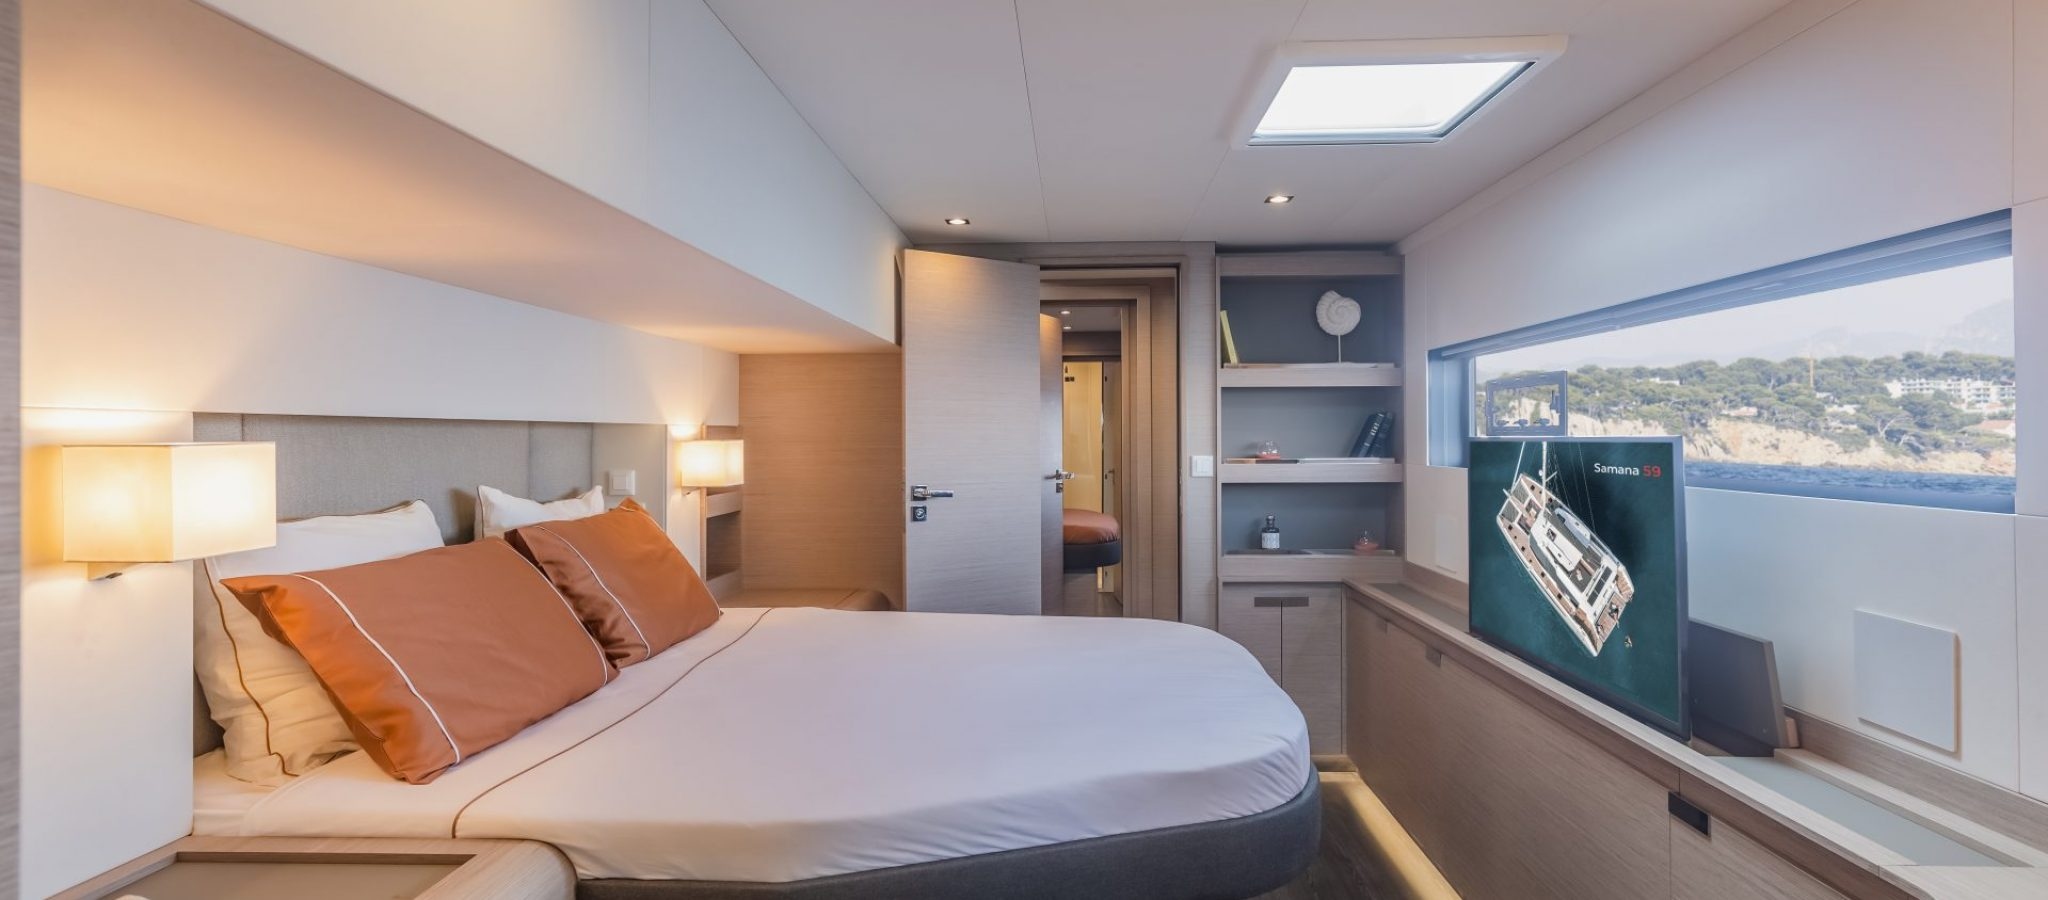 Fountaine-Pajot-Samana-59-Owner-Suite (1)